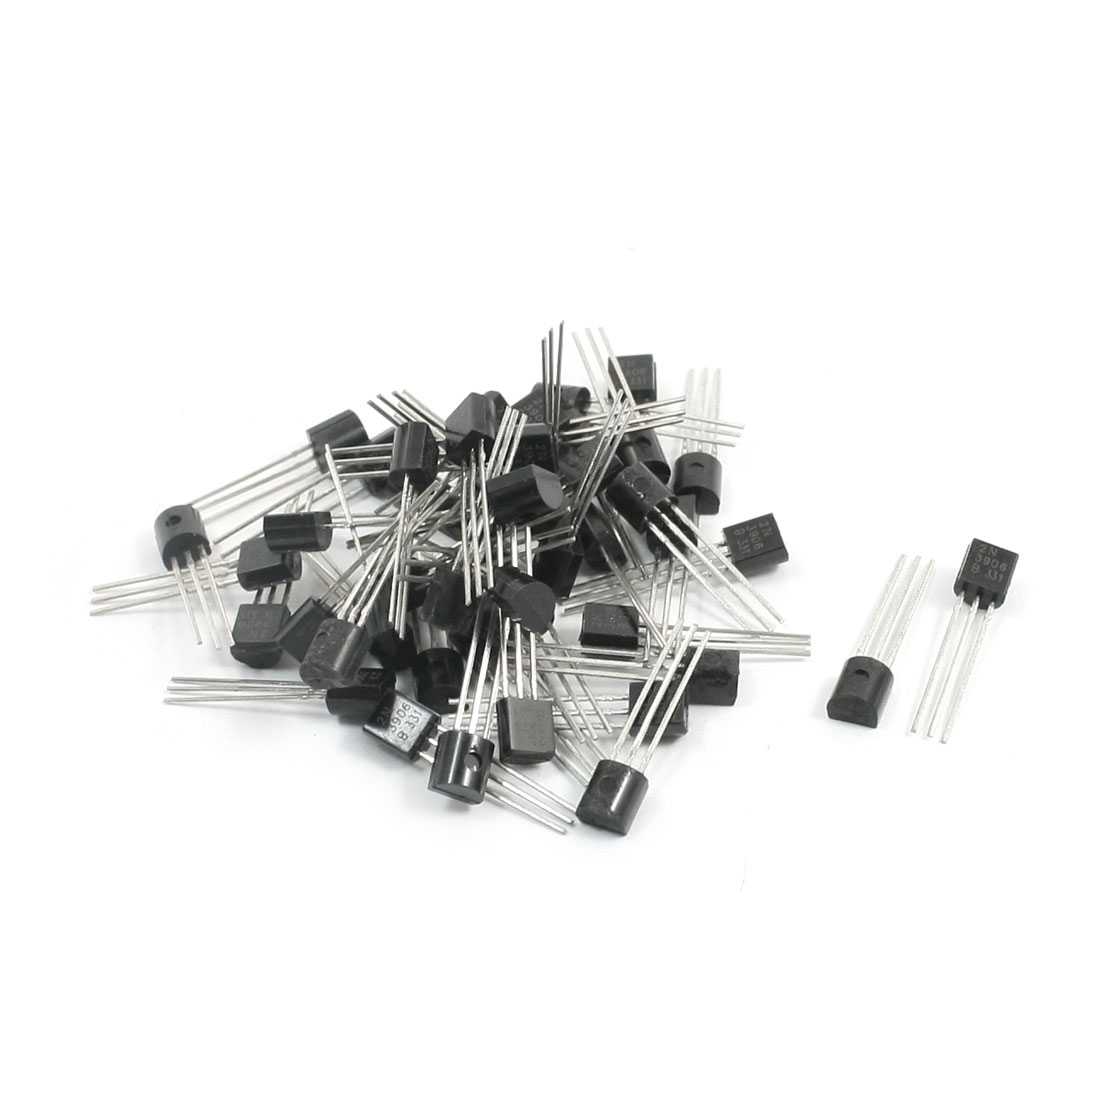 2N3906 PNP TO-92 Electric Component 3 Pins Through Hole Mount General Purpose Power Transistor 40V 0.2A 50Pcs